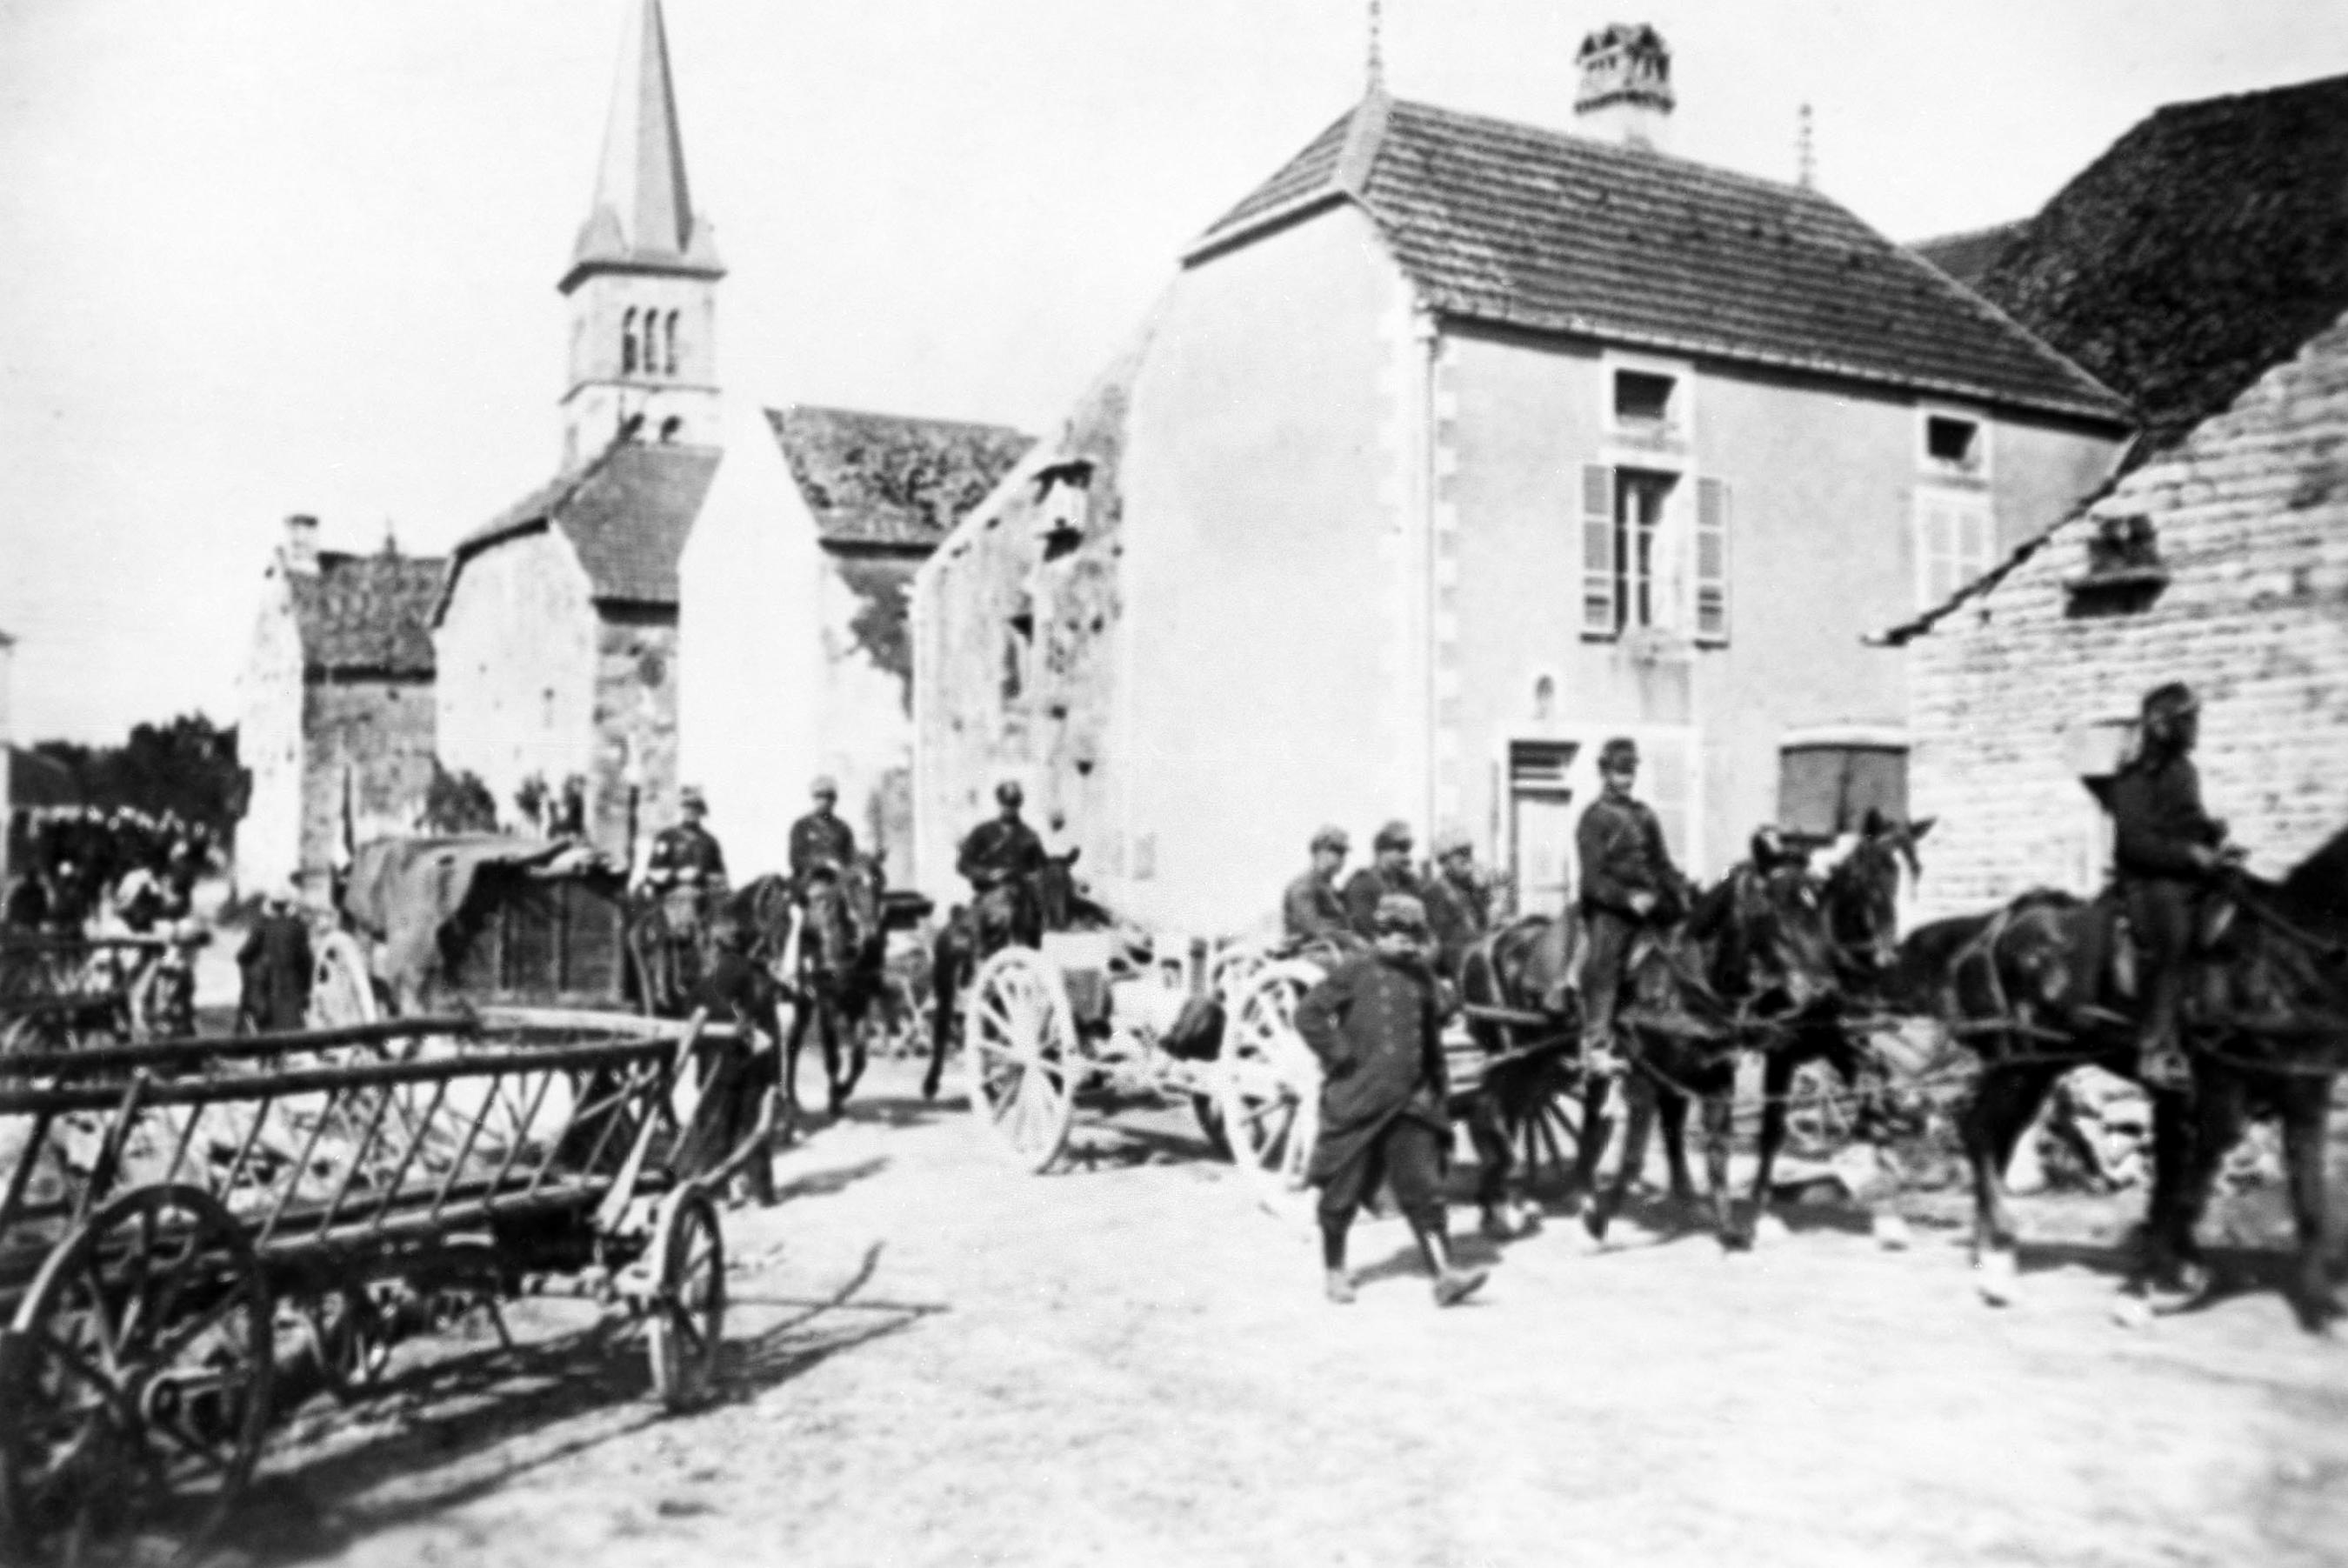 FILE - French cavalry marching through northern France, after driving the Germans back in an undated photo. They were messengers, spies, sentinels and the heavy haulers of World War I, carrying supplies, munitions and food and leading cavalry charges. The horses, mules, dogs and pigeons were a vital part of the Allied war machine, saving countless lives _ and dying by the millions. (AP Photo, File)